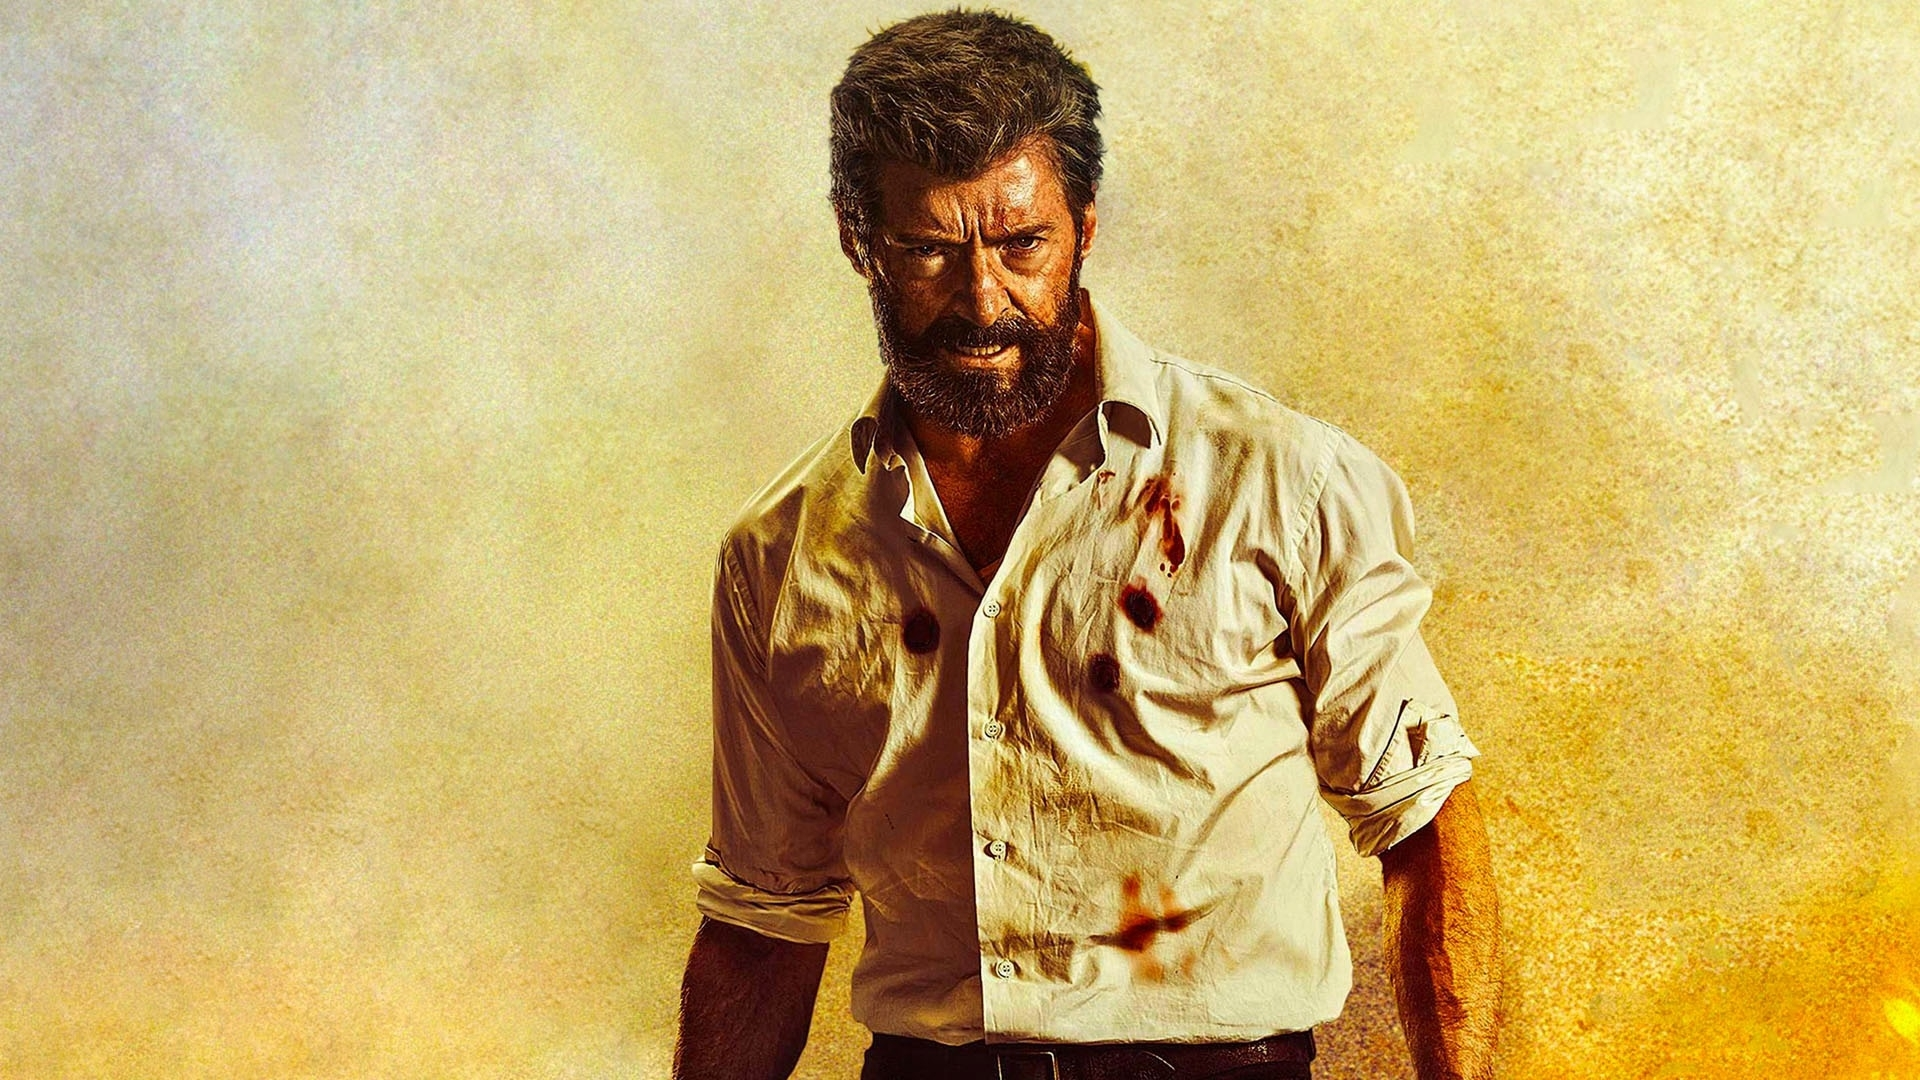 logan 2017 movie, hd movies, 4k wallpapers, images, backgrounds